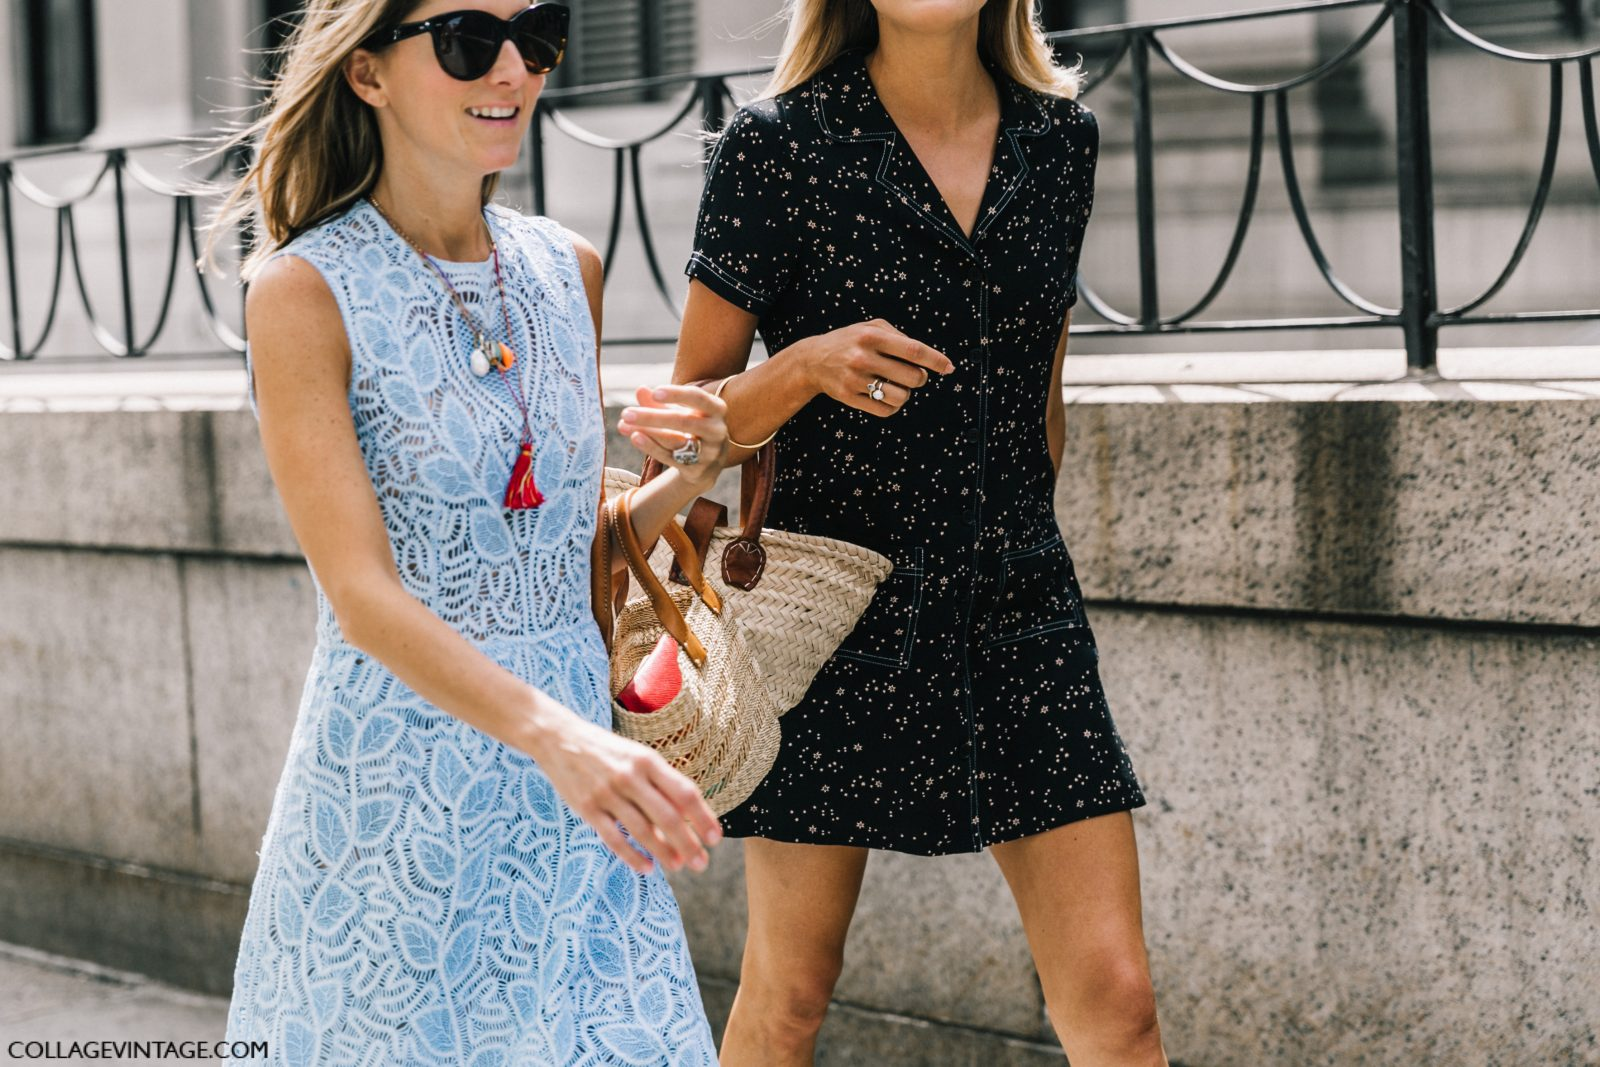 nyfw-new_york_fashion_week_ss17-street_style-outfits-collage_vintage-vintage-tome-2